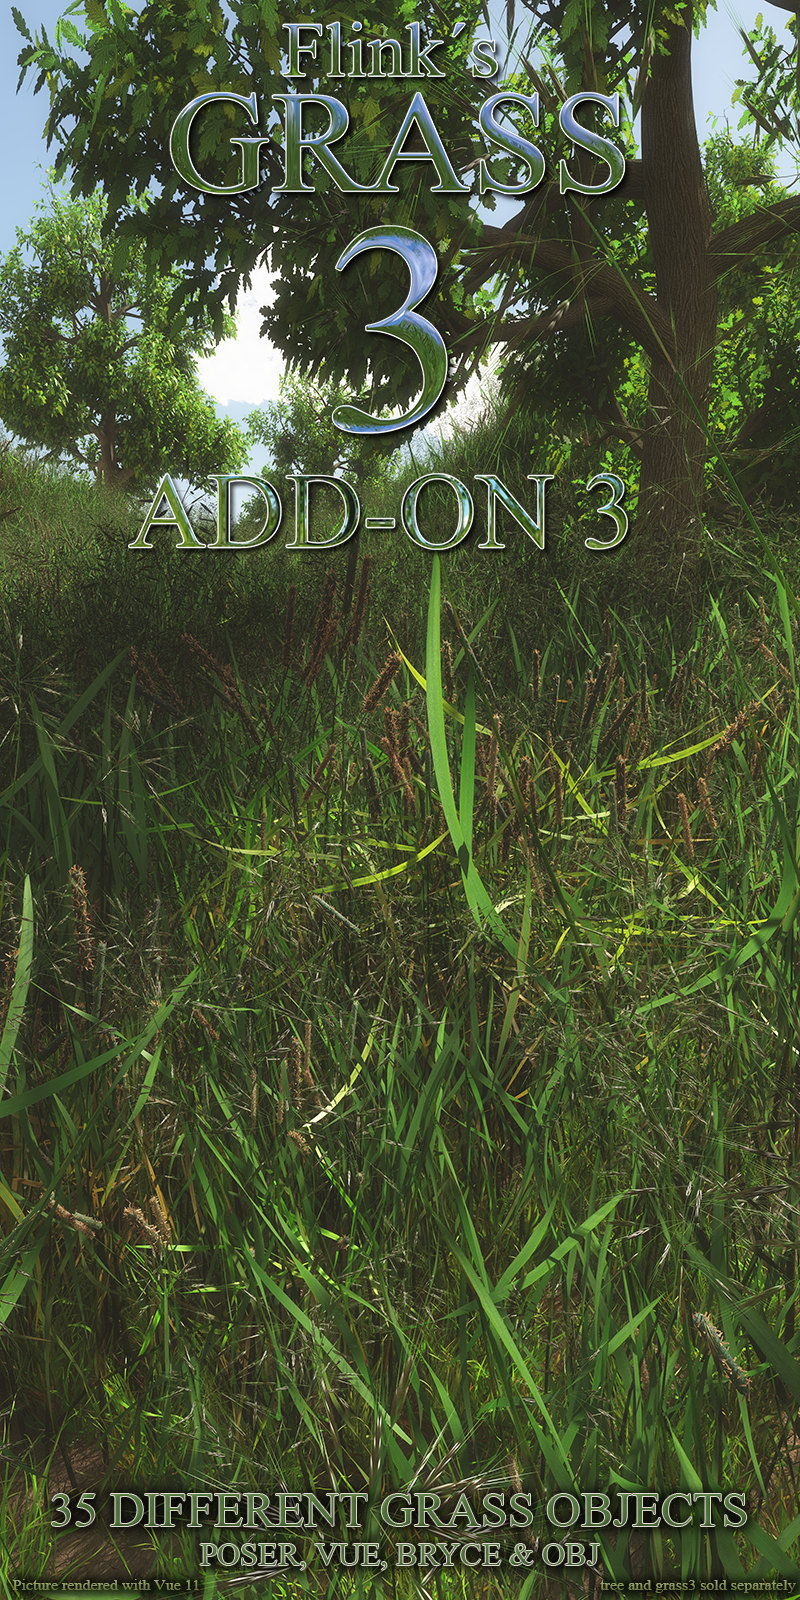 Flinks Grass 3 - Add-on 3